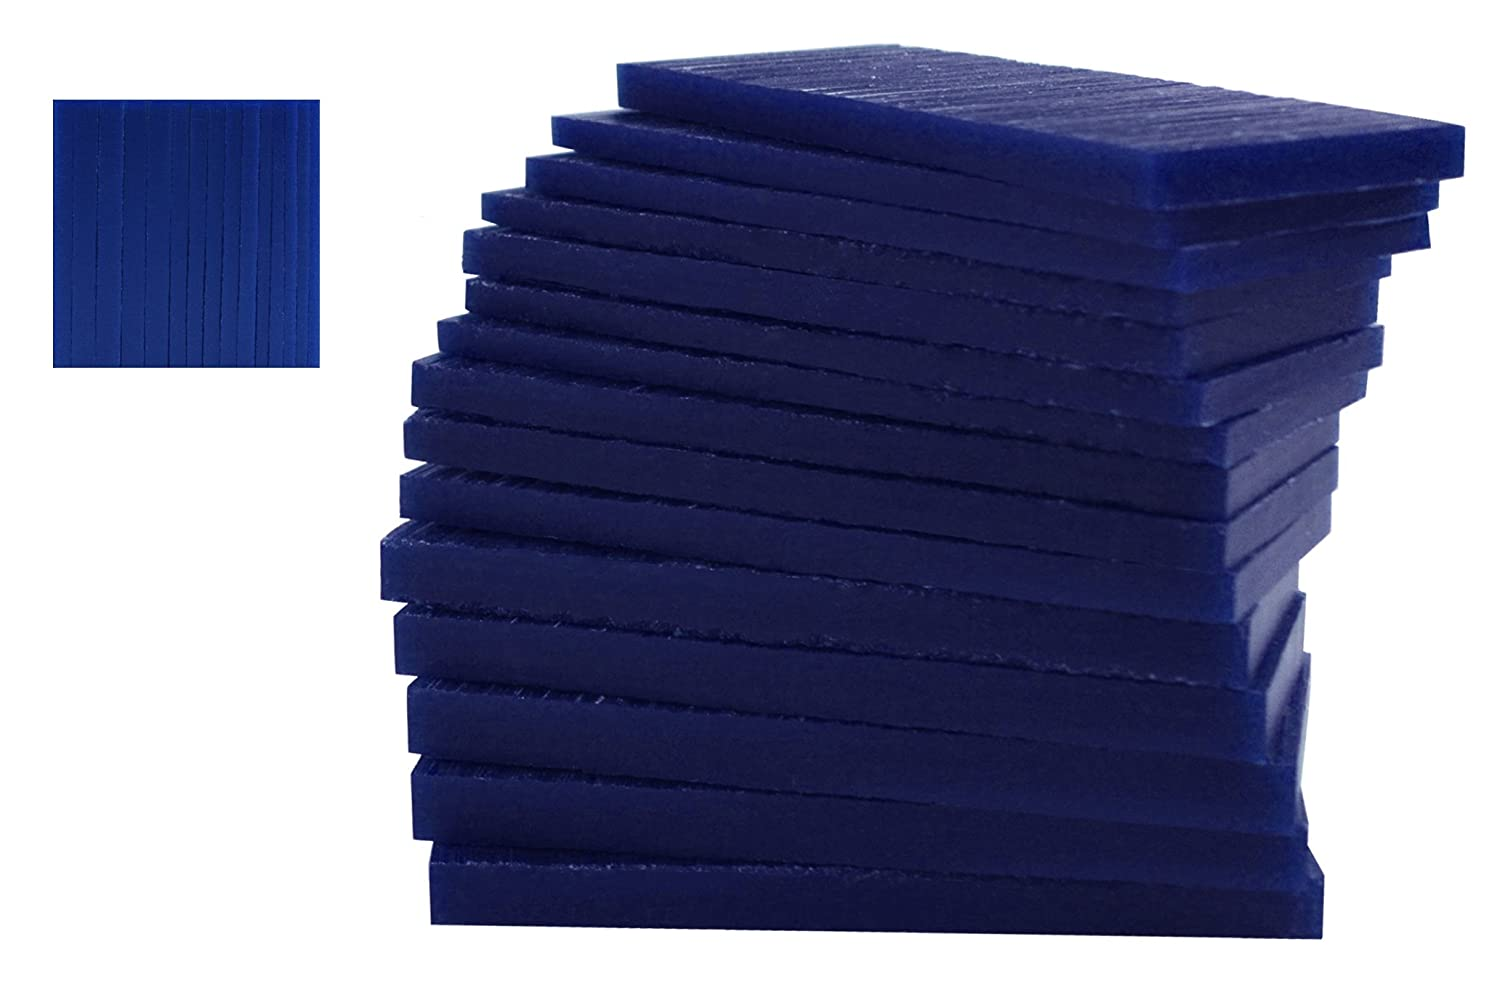 15 Piece Assortment of 1/2 Lb Blue Wax Carving Block Jewelry Pattern Making Machining Medium-Hard Melting Modeling Wax PMC Supplies WAX-331.25